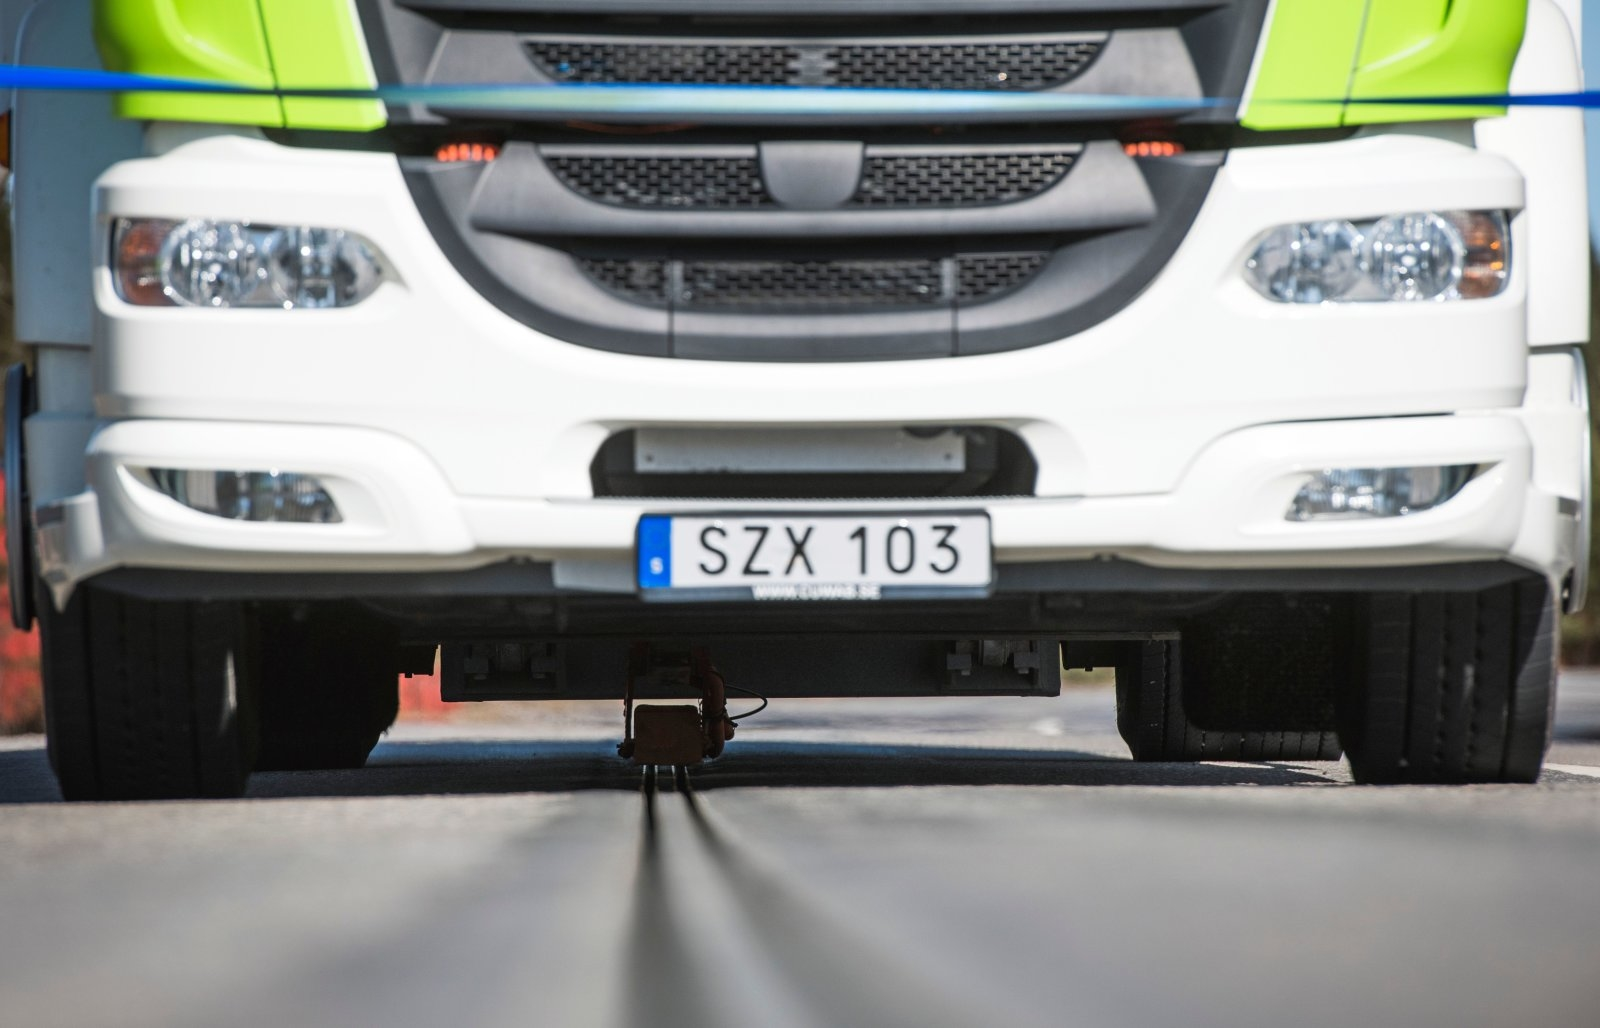 """An all-electric truck is attached to the first """"eRoad"""" of its kind, an approximately two-kilometer-long electrified road on April 11, 2018 at Arlanda airport, north of Stockholm.  This eRoadArlanda is an example of a sustainable and cost-effective solution to enable the electrification of existing commercial roads. The electrified road, a Swedish innovation, is the first of its kind in the world and allows both commercial and passenger vehicles to be recharged while driving.   / AFP PHOTO / Jonathan NACKSTRAND        (Photo credit should read JONATHAN NACKSTRAND/AFP/Getty Images)"""